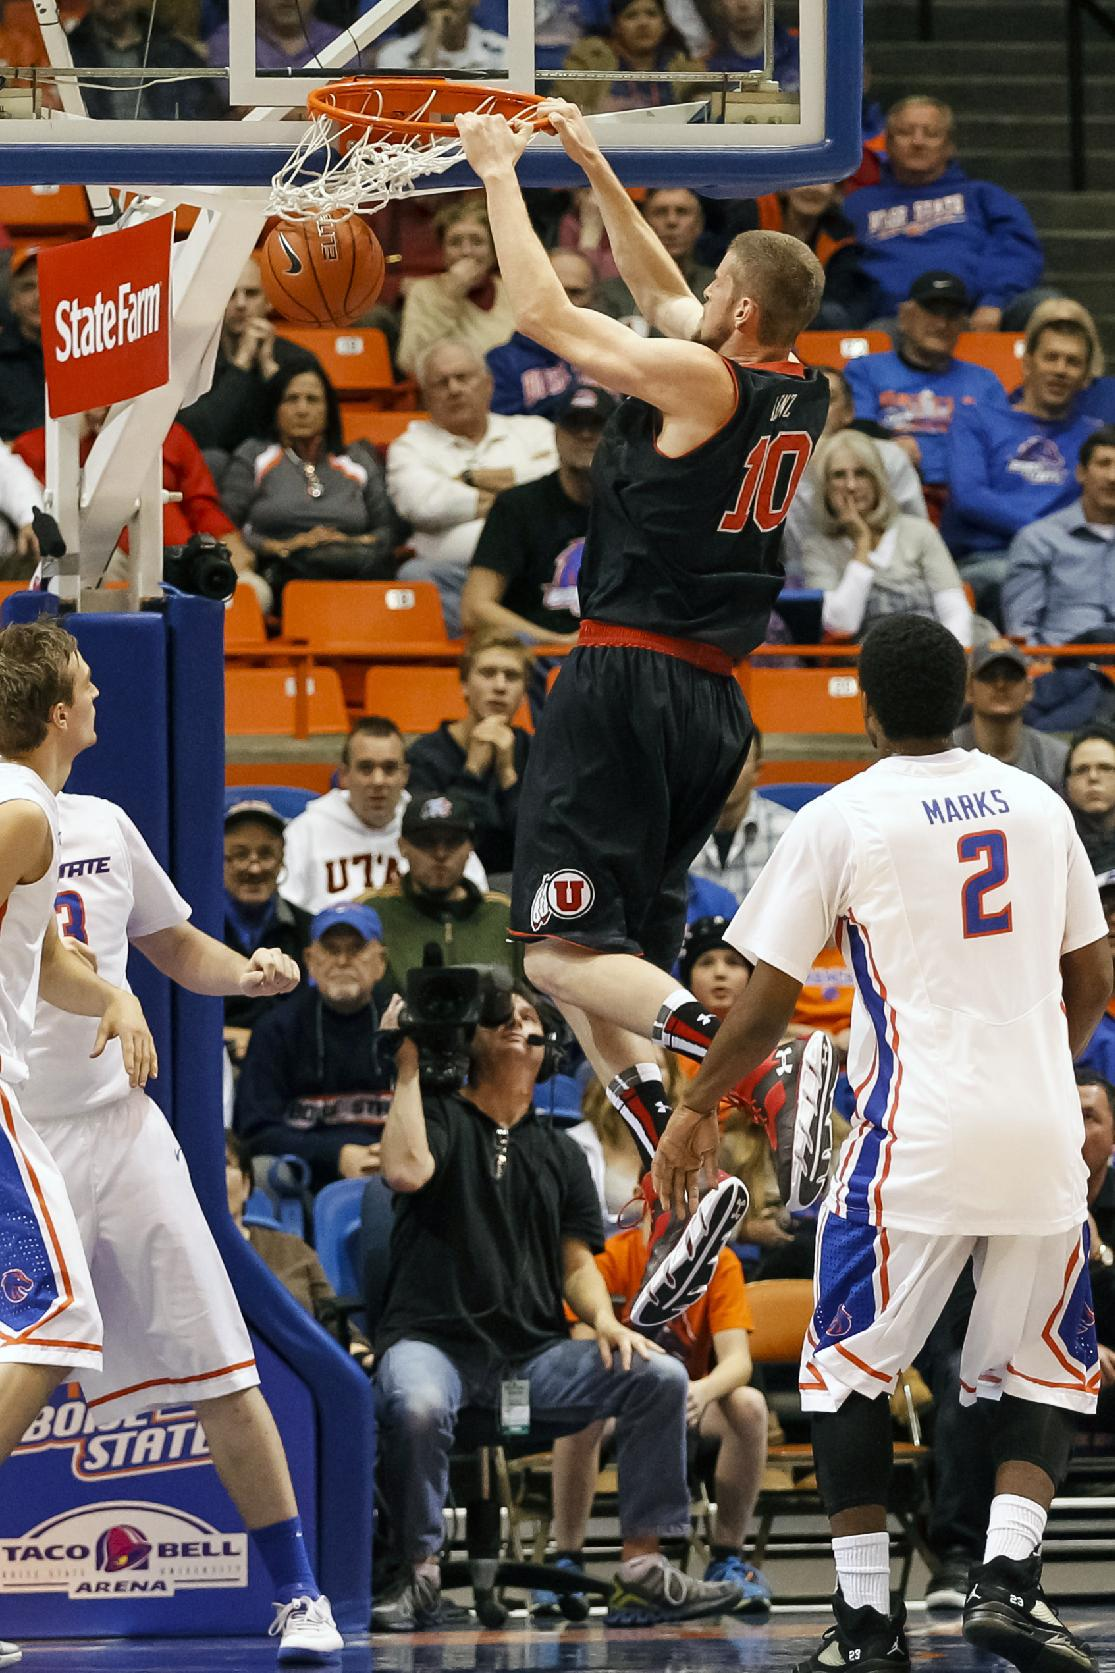 Boise State ekes out win over Utah 69-67